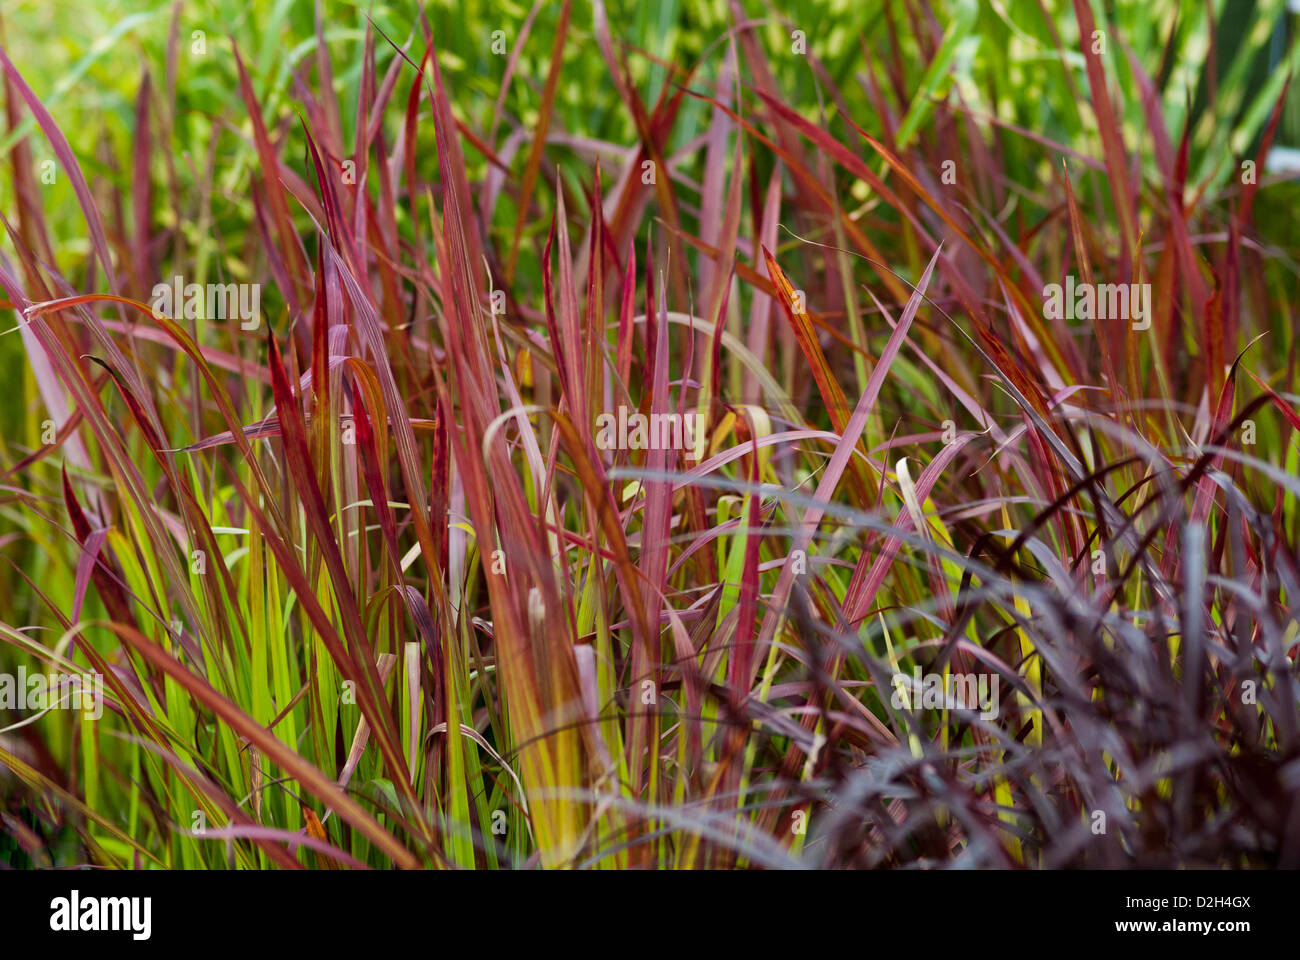 pennisetum setaceum rubrum and imperata cylindrica red baron stock photo royalty free image. Black Bedroom Furniture Sets. Home Design Ideas